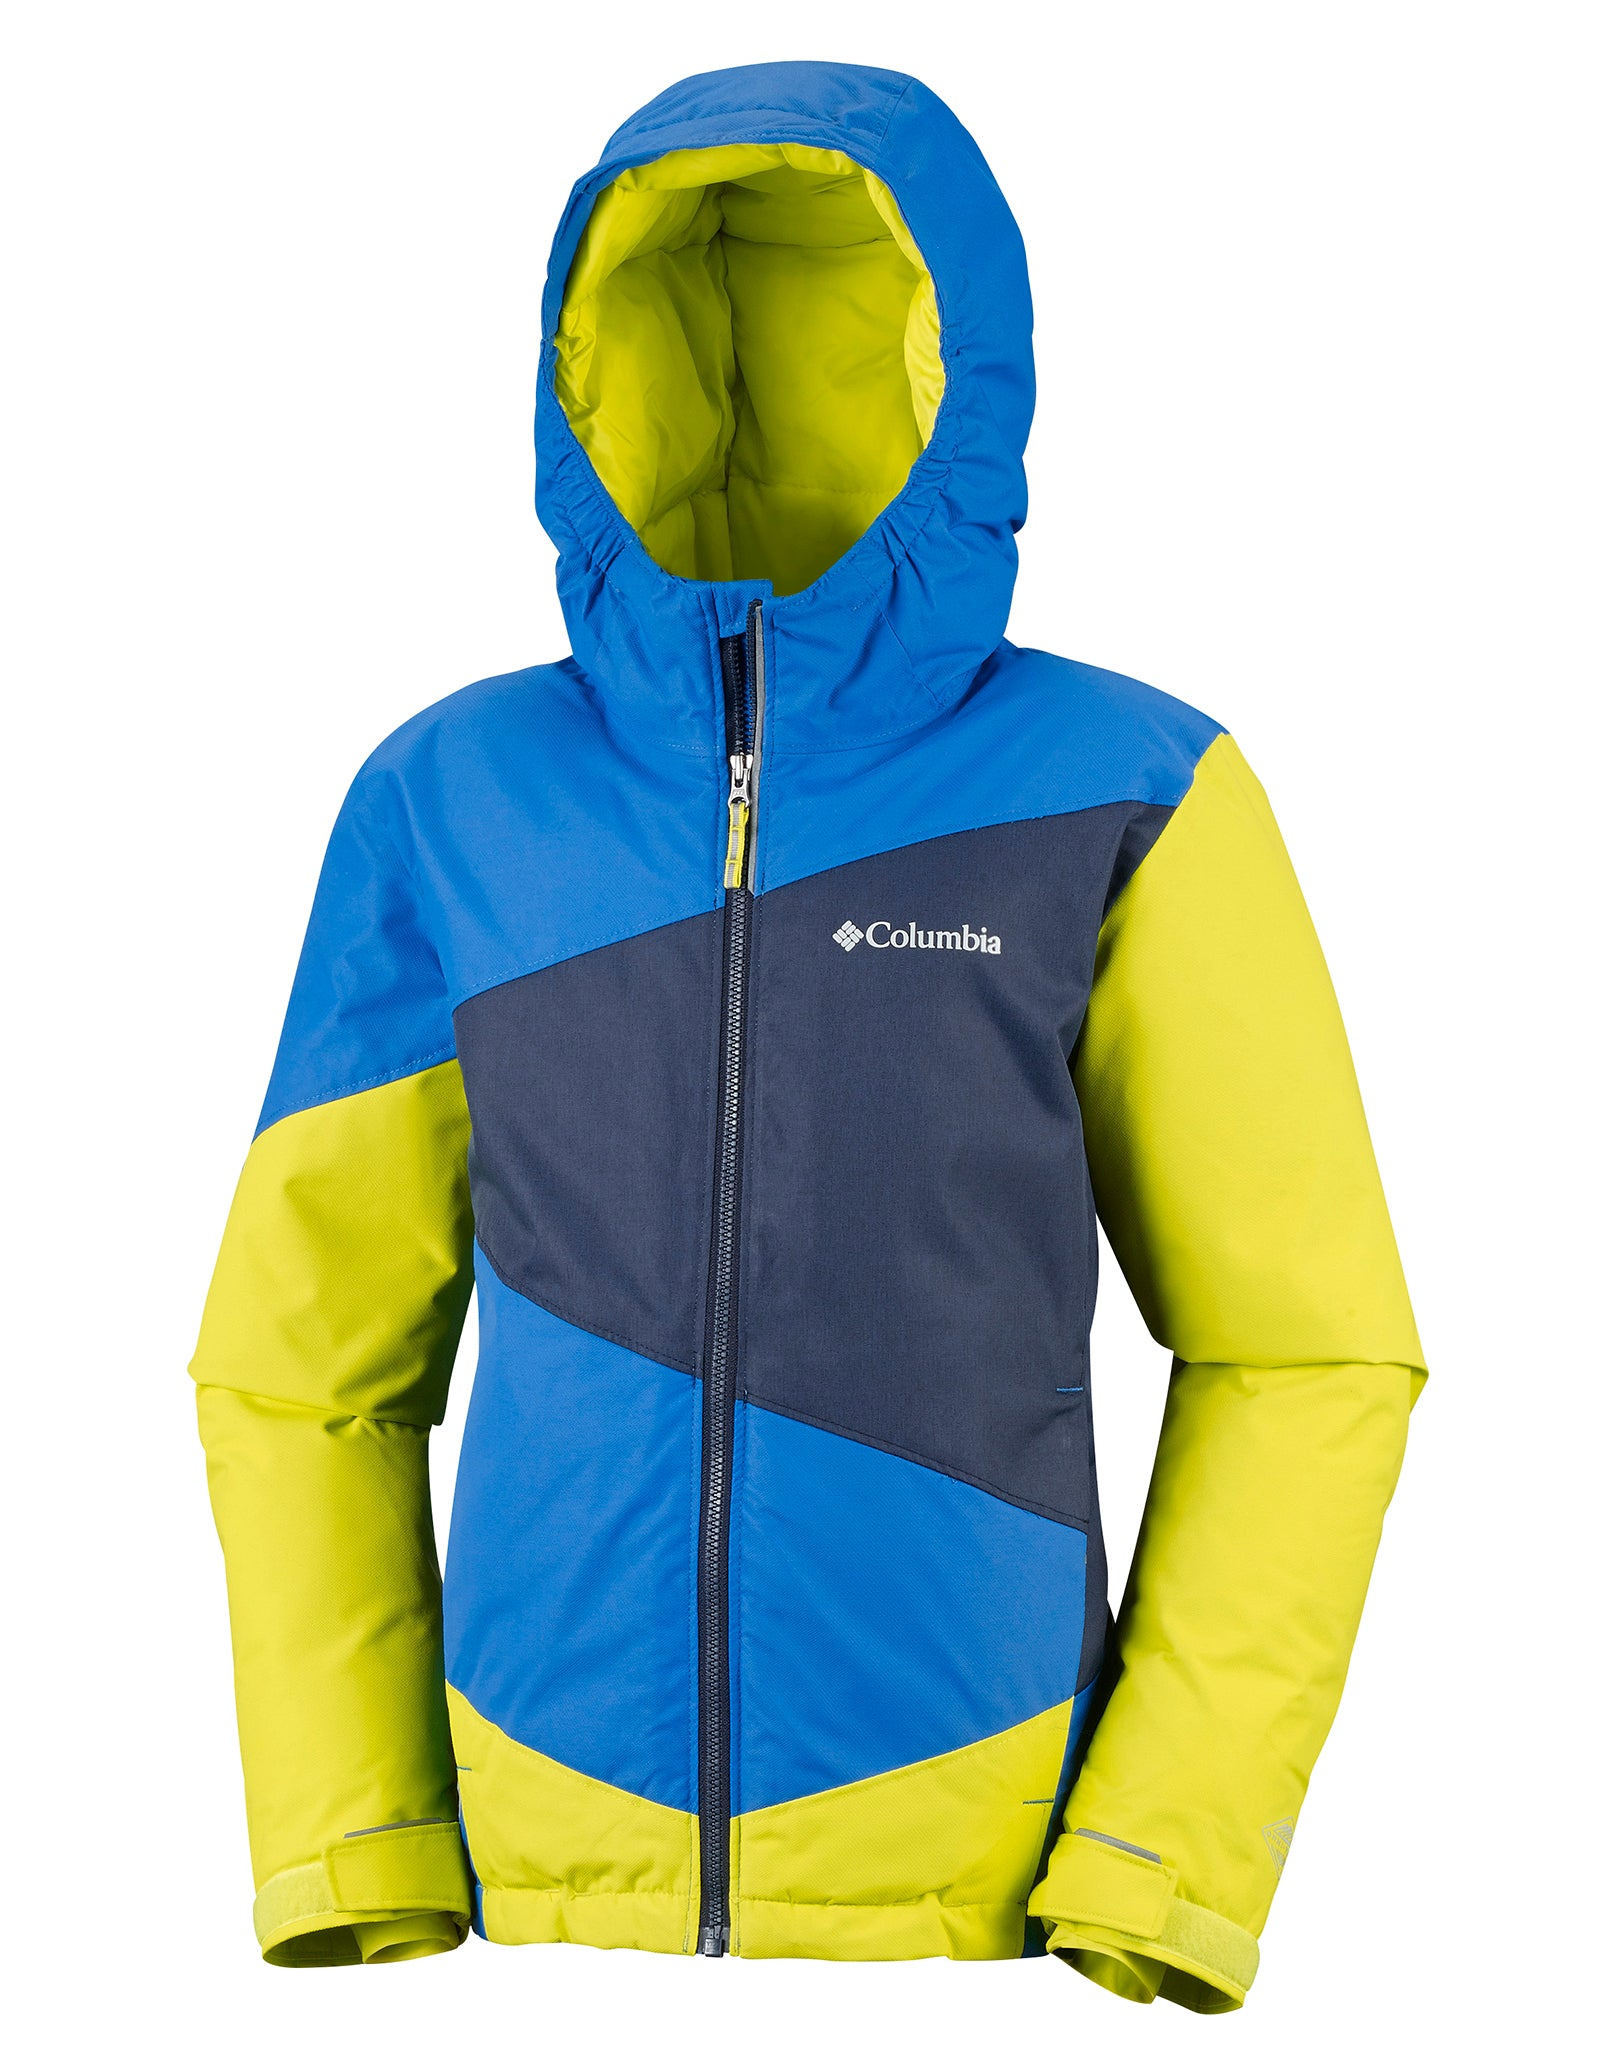 9ee0a6f9d Columbia Boys Wildstar Jacket - Super Blue/Zour Green   Simply Hike UK